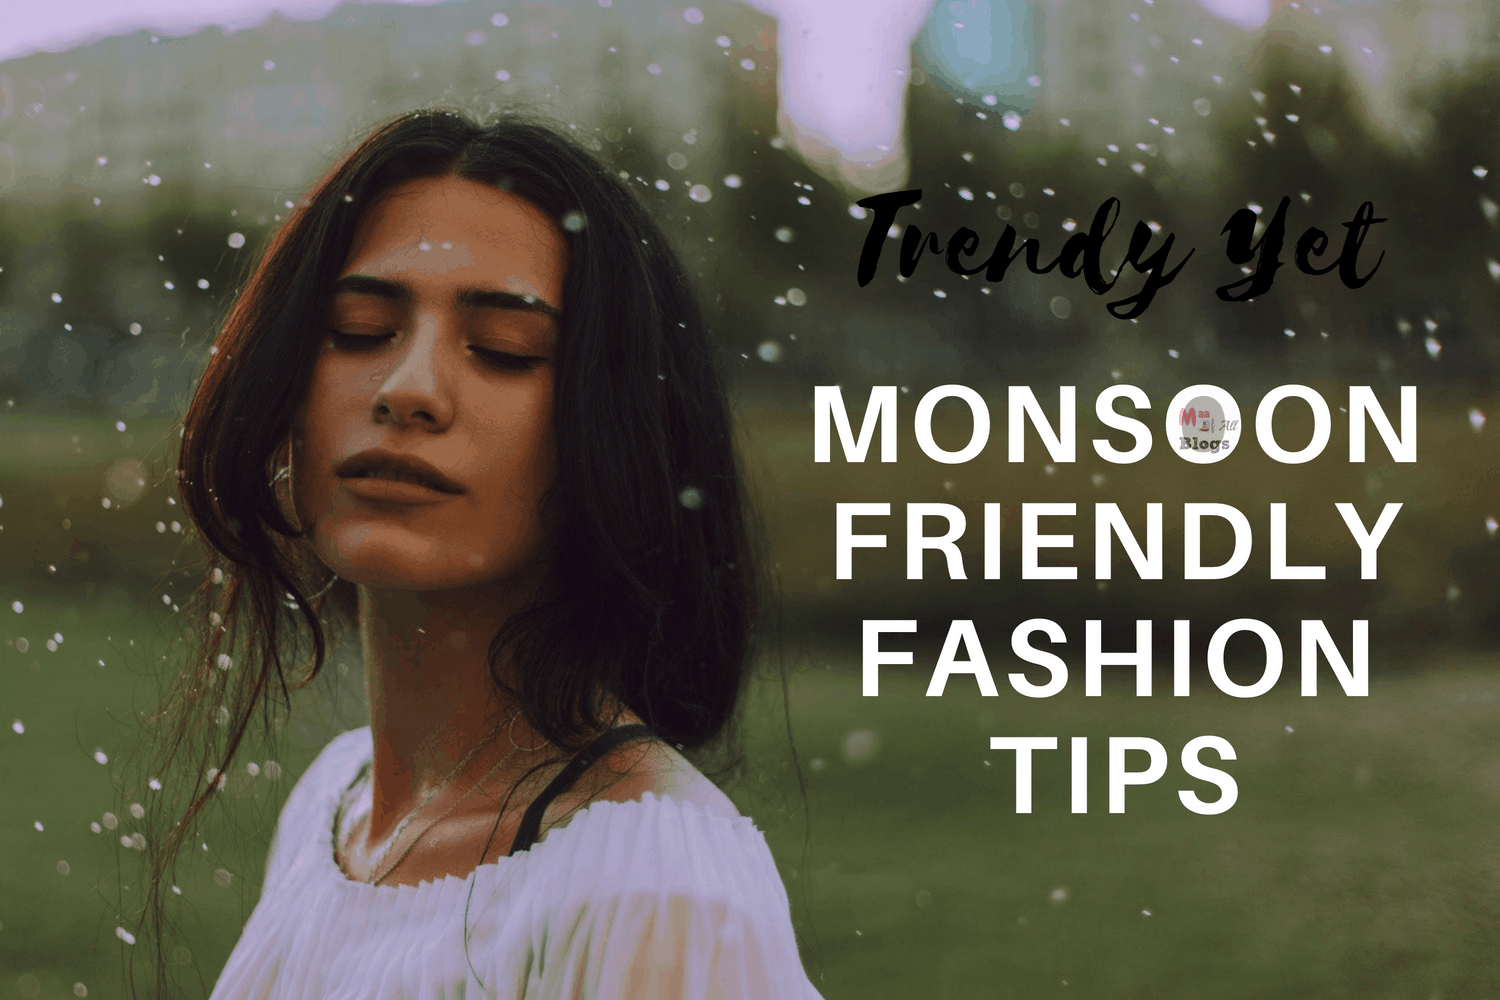 Monsoon friendly fashion tips